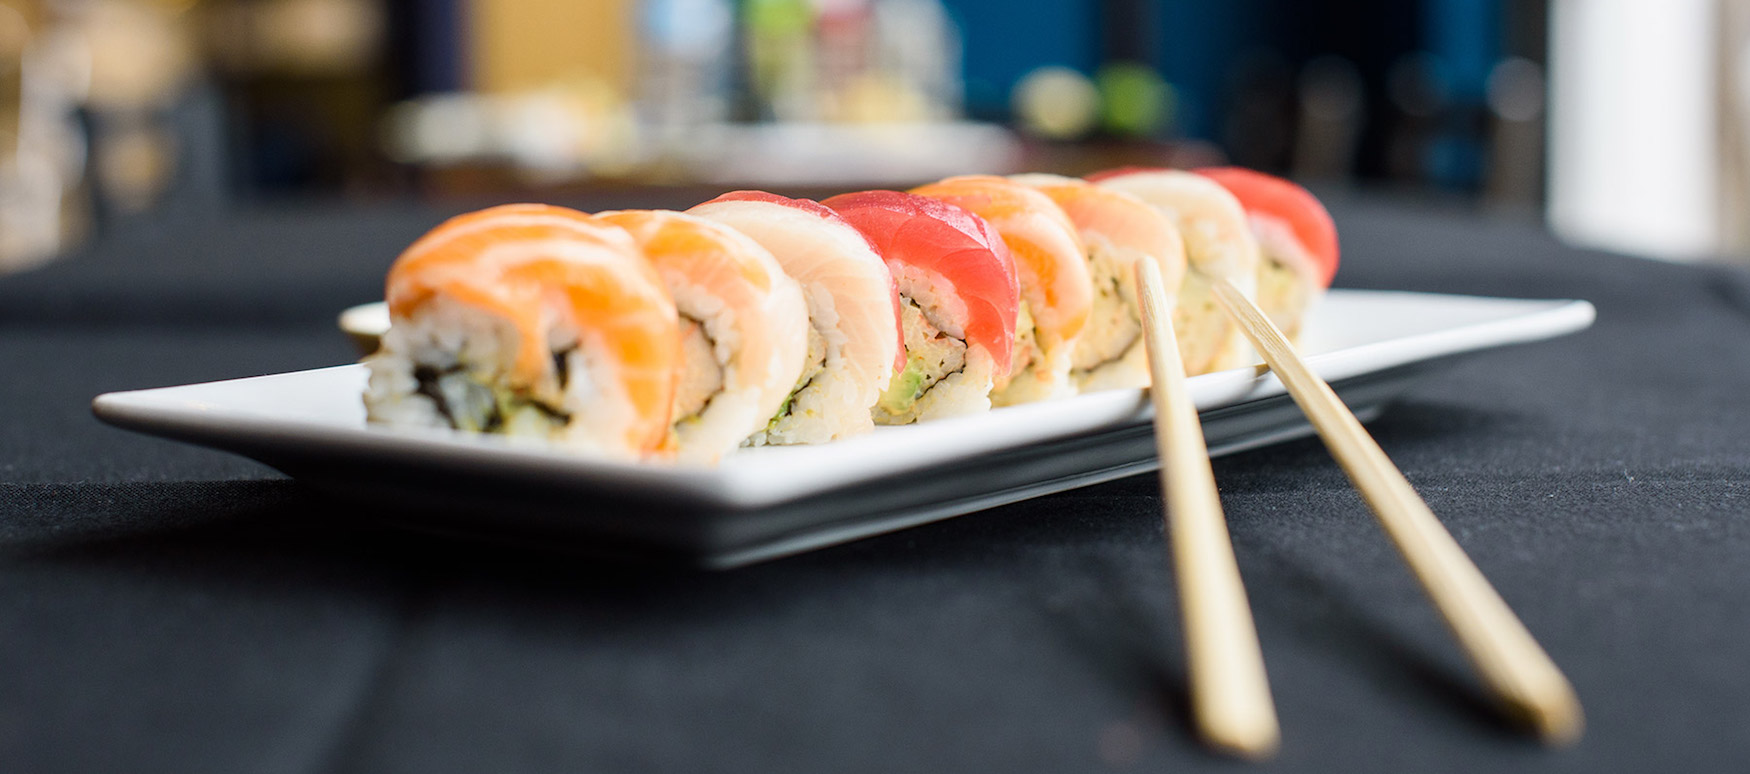 Fresh, Made to Order Sushi at The Warren Bar & Burrow